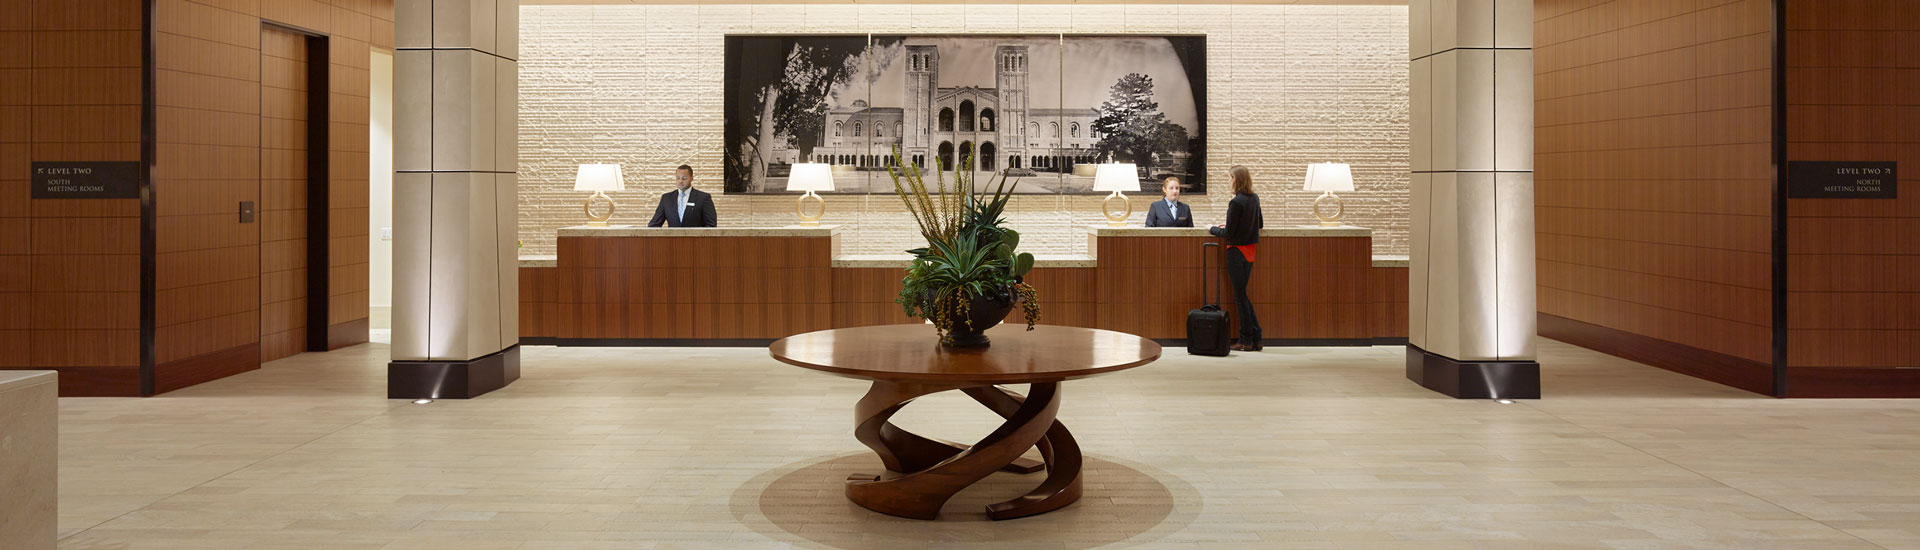 two workers at the lobby front desk